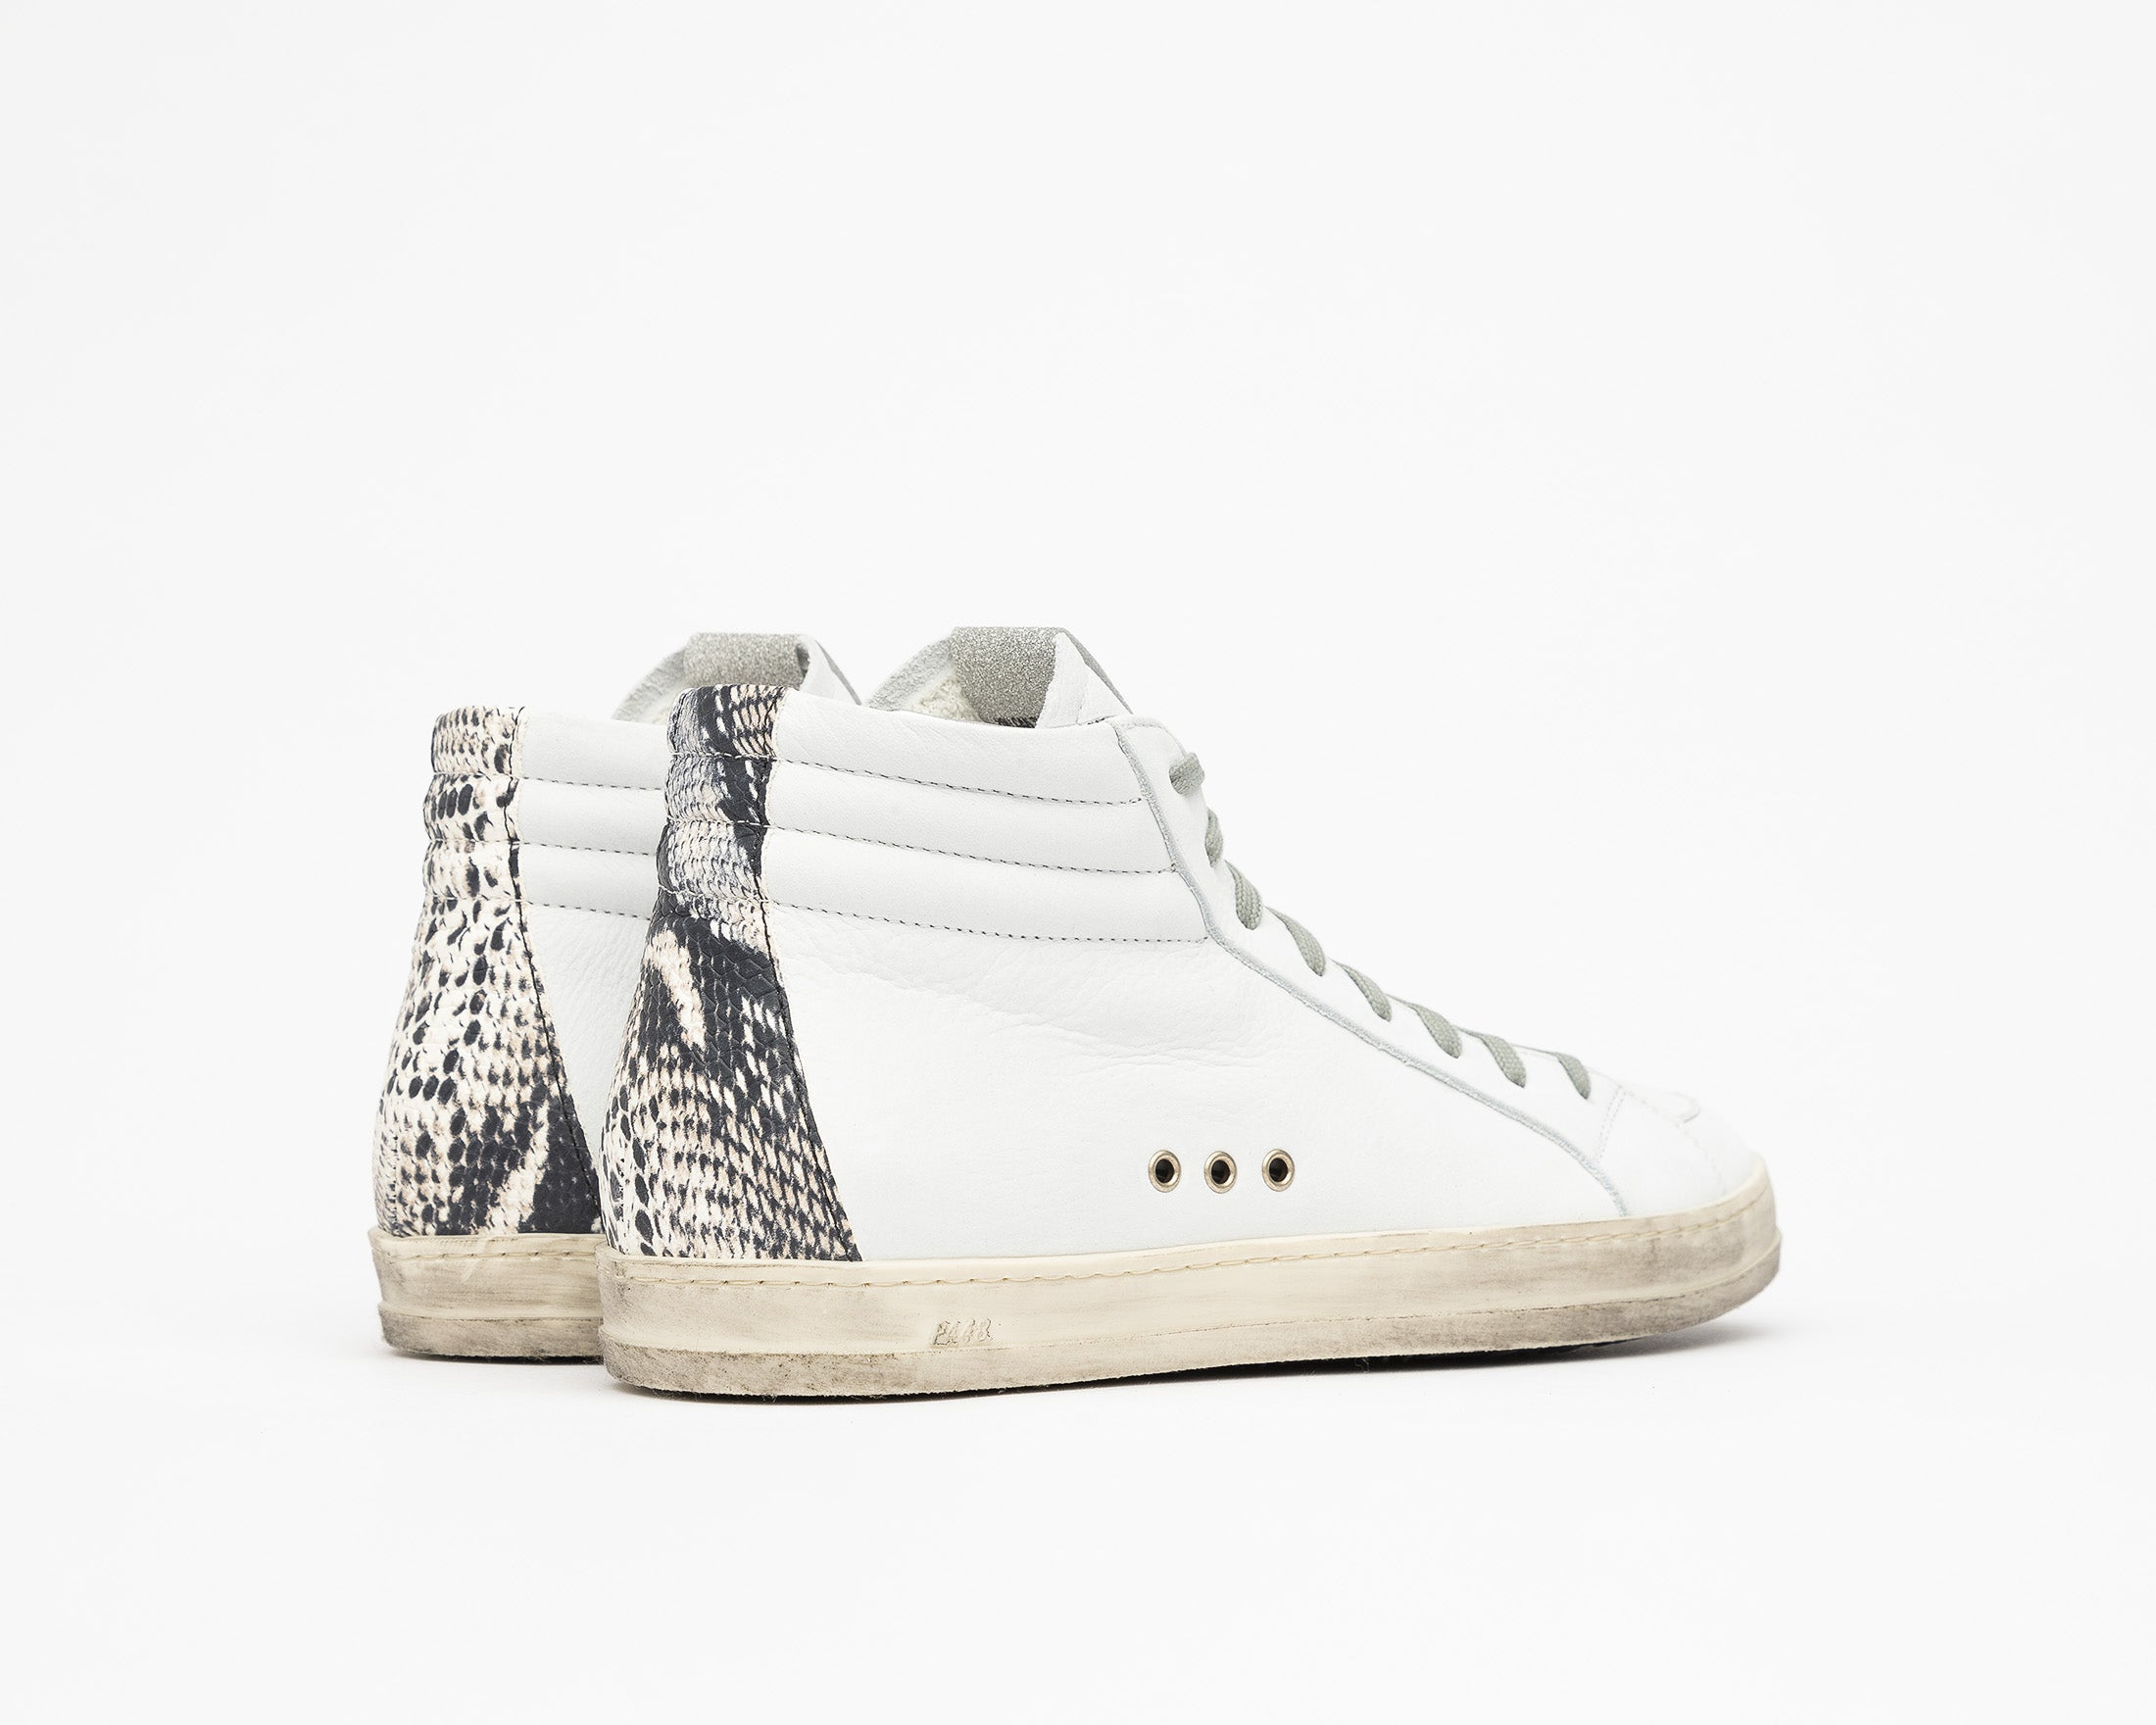 Skate High-Top Sneaker in White/Twister Python - Back